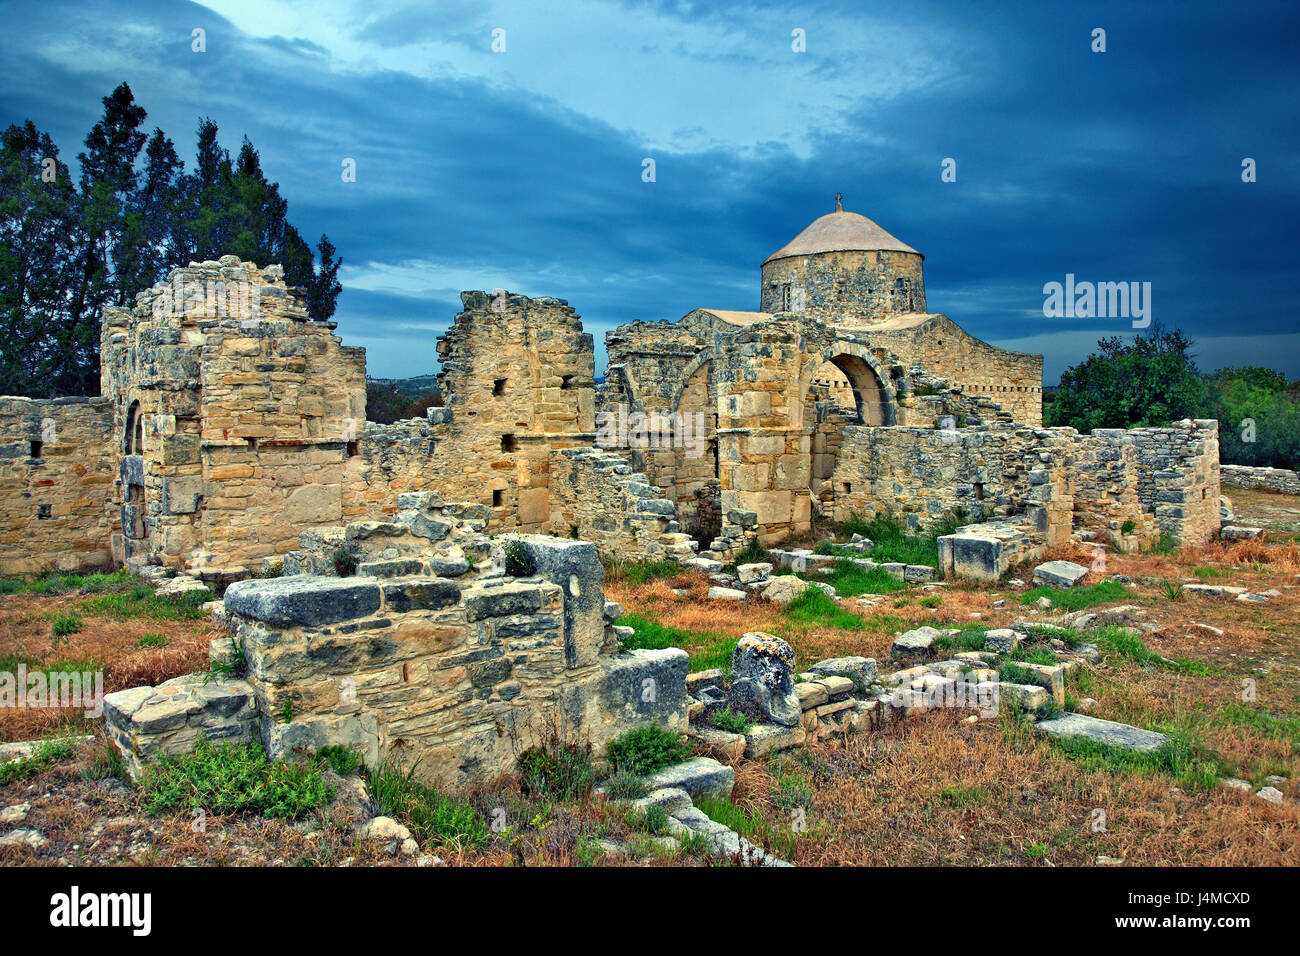 The byzantine church in the monastery of Timios Stavros ('Holy Cross'), close to Anogyra village, Cyprus. - Stock Image